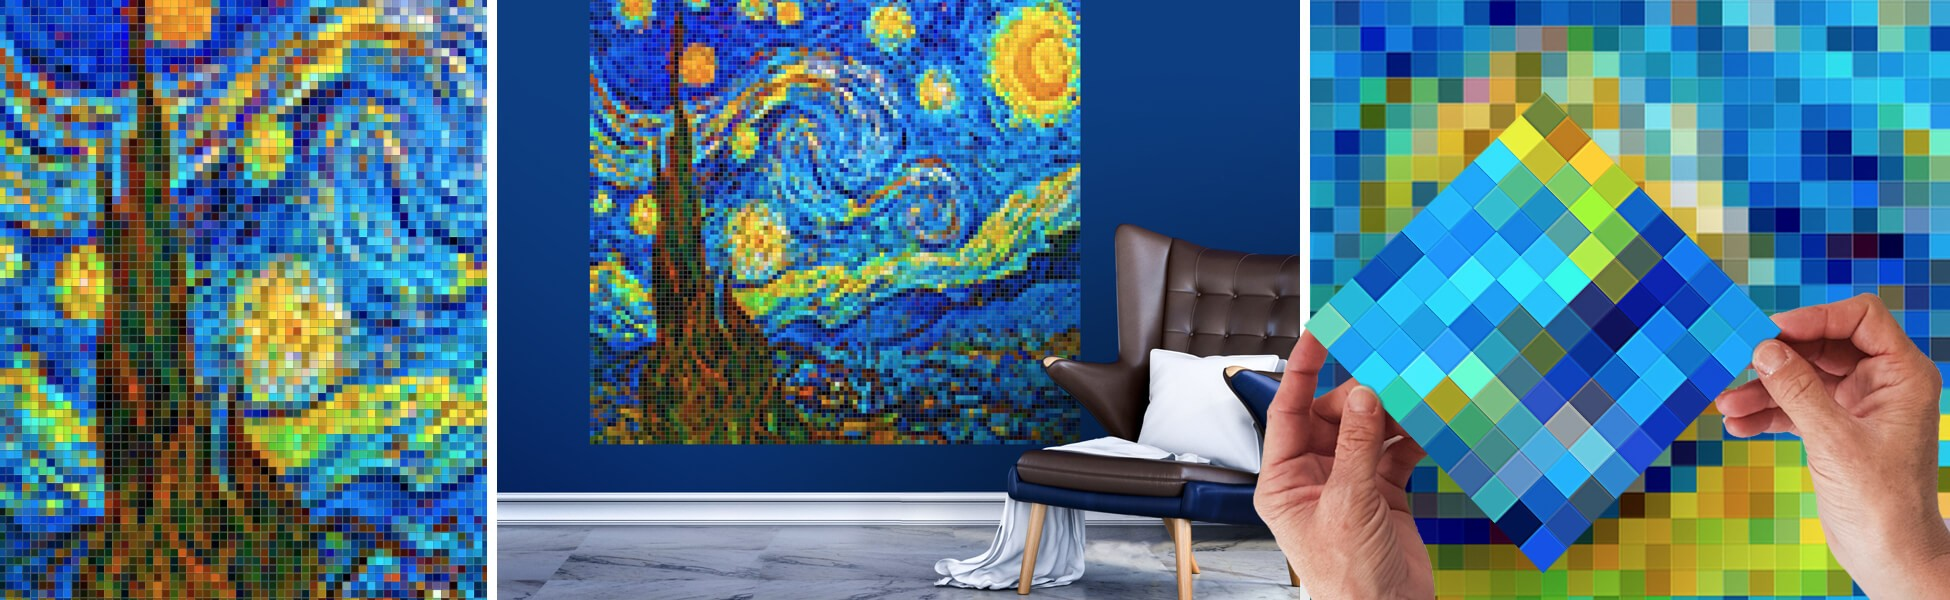 Magnifient artworks of The Starry Night in pixel art